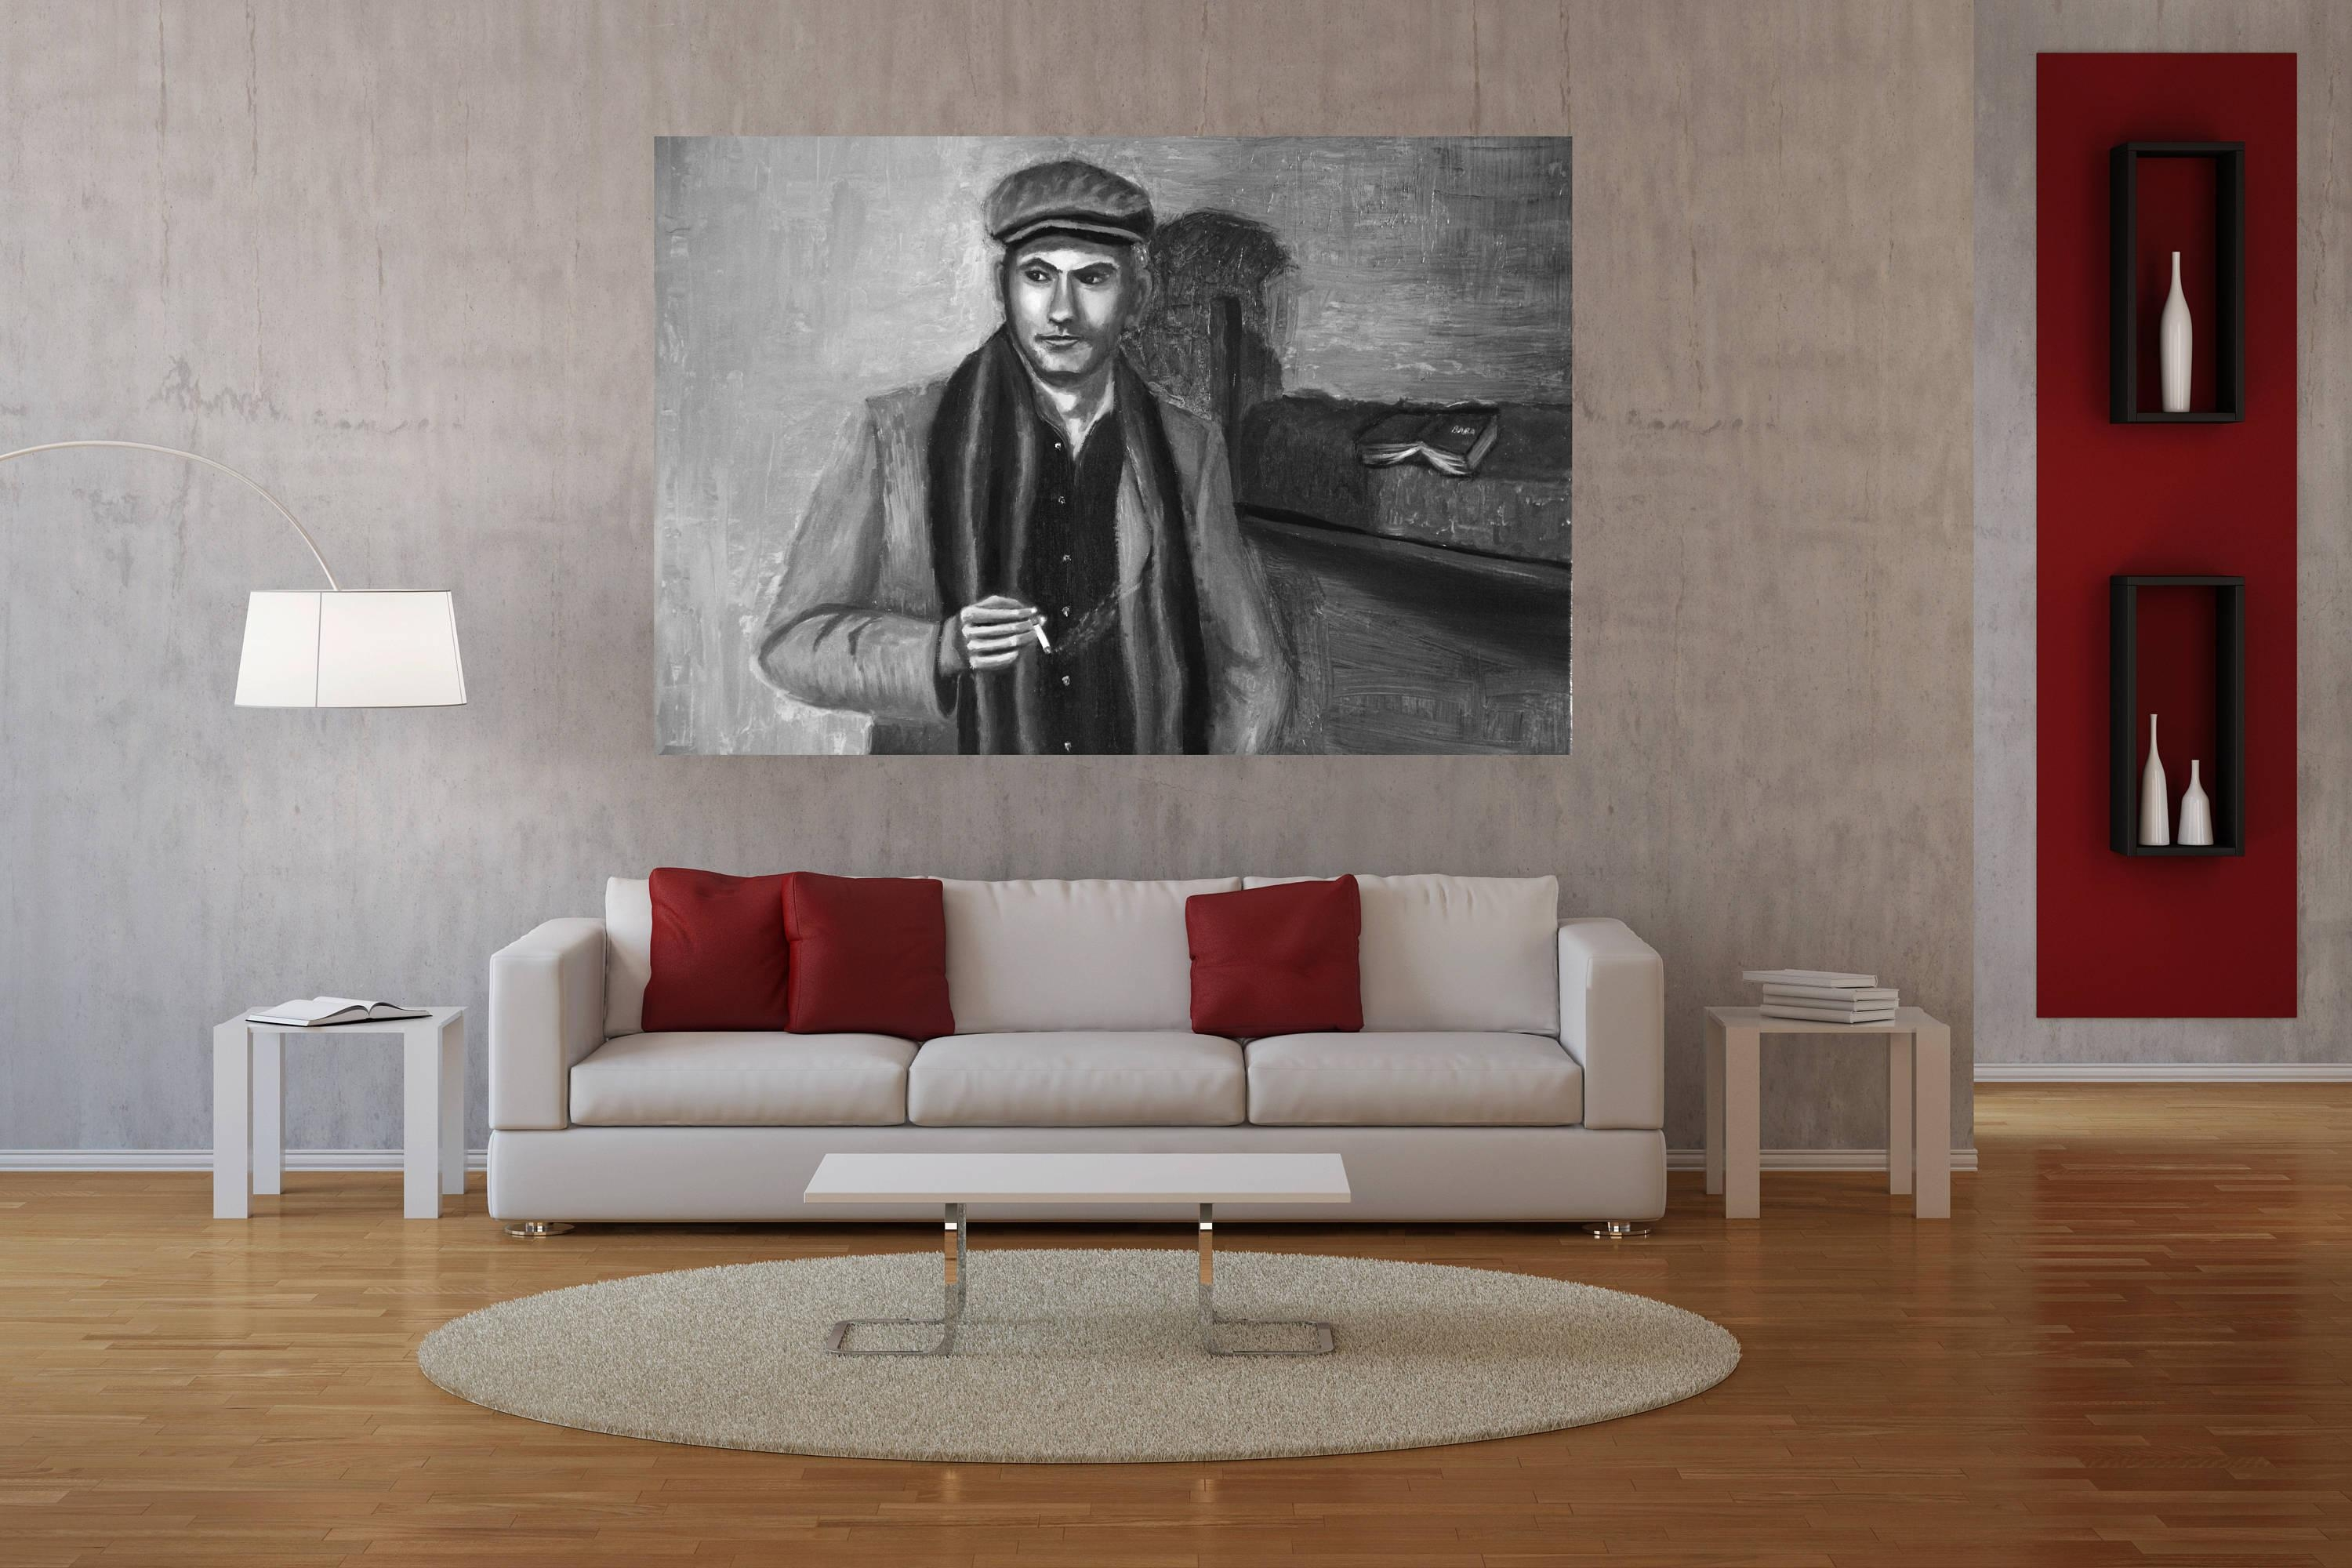 Large Black And White Wall Art,man Portrait Painting,wall Art With Regard To Large White Wall Art (Image 10 of 21)